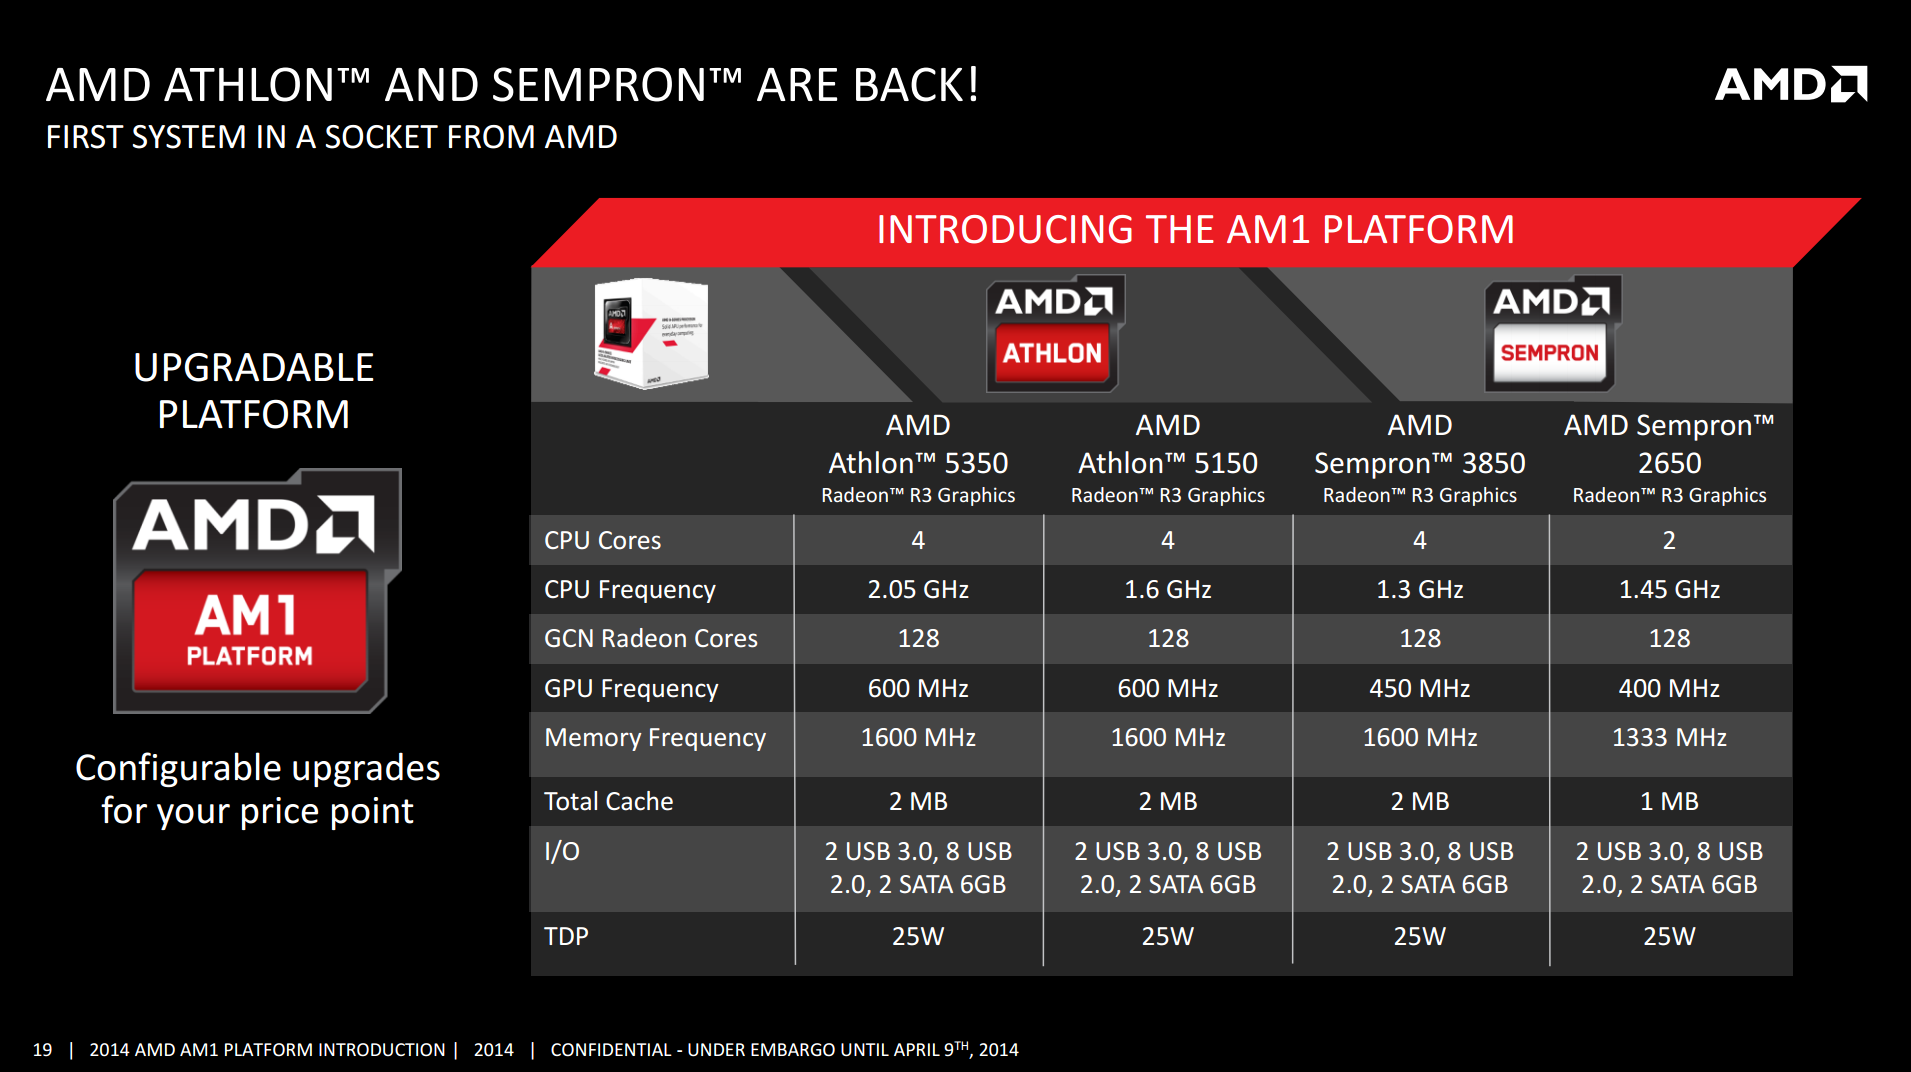 Amd Athlon 5350 With Radeon R3 igp comparison, synthetics - the desktop kabini review part